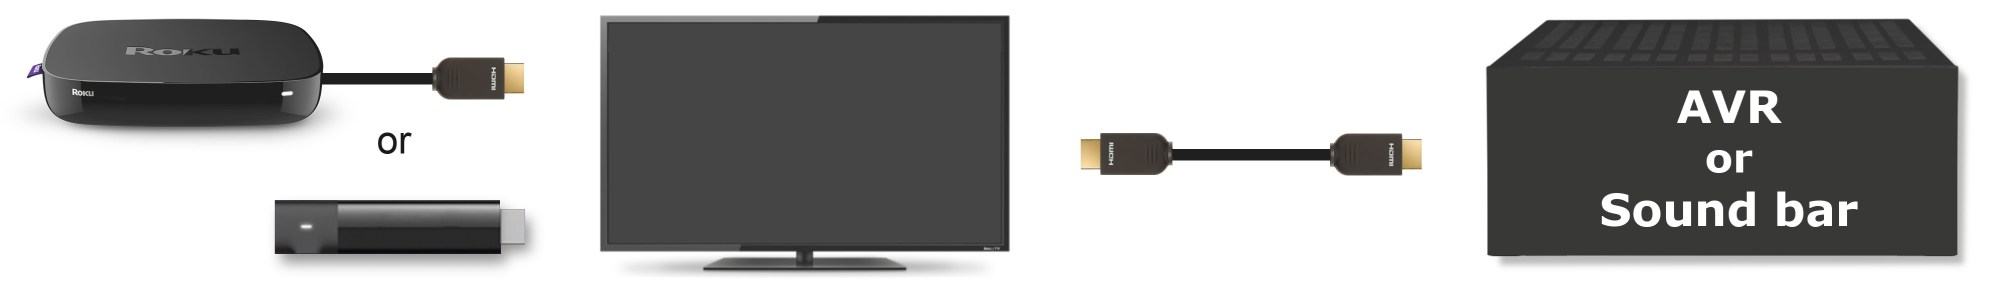 hight resolution of roku player with hdmi or streaming stick connecting to tv and tv connecting to audio video